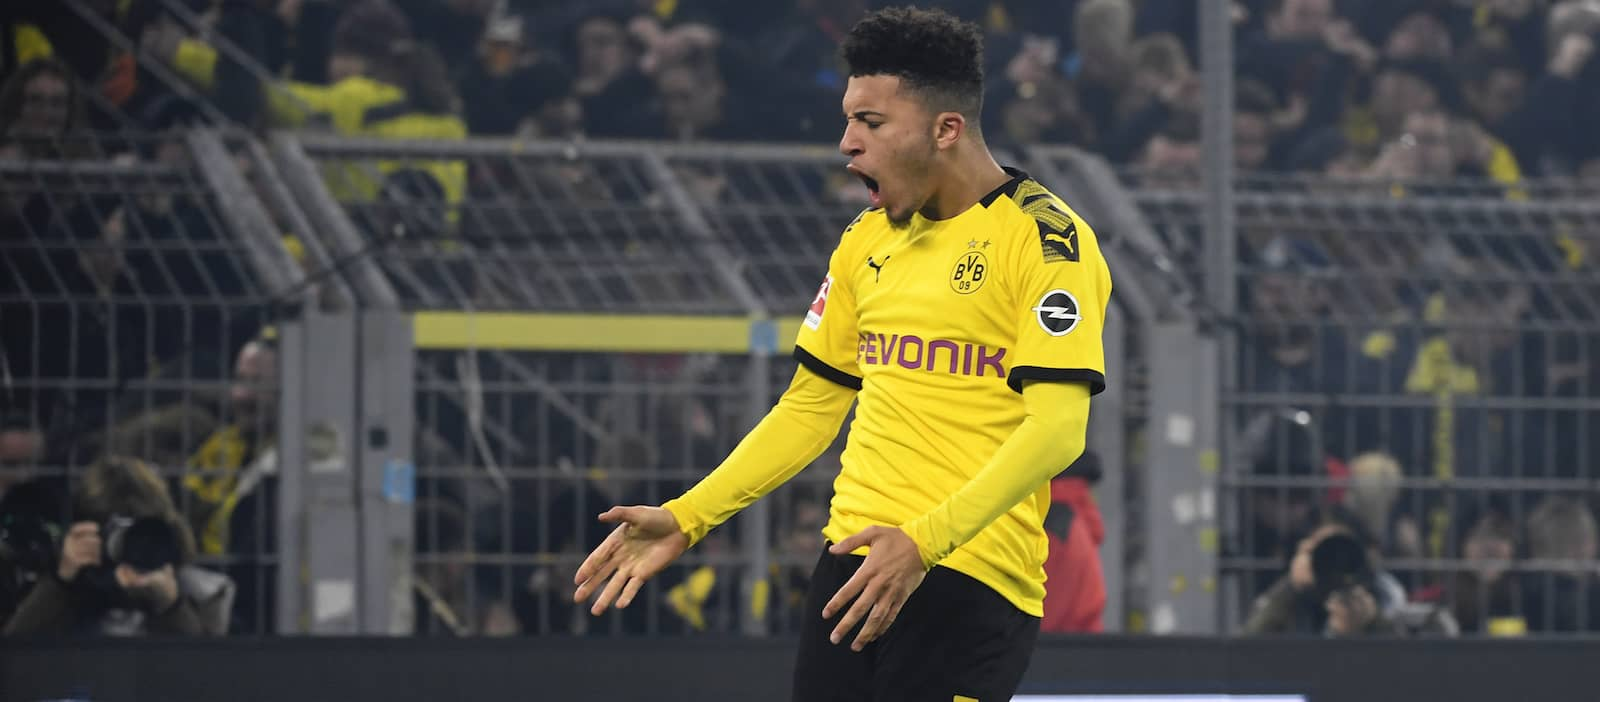 Jadon Sancho's wages holding up Man United transfer, Sky claims